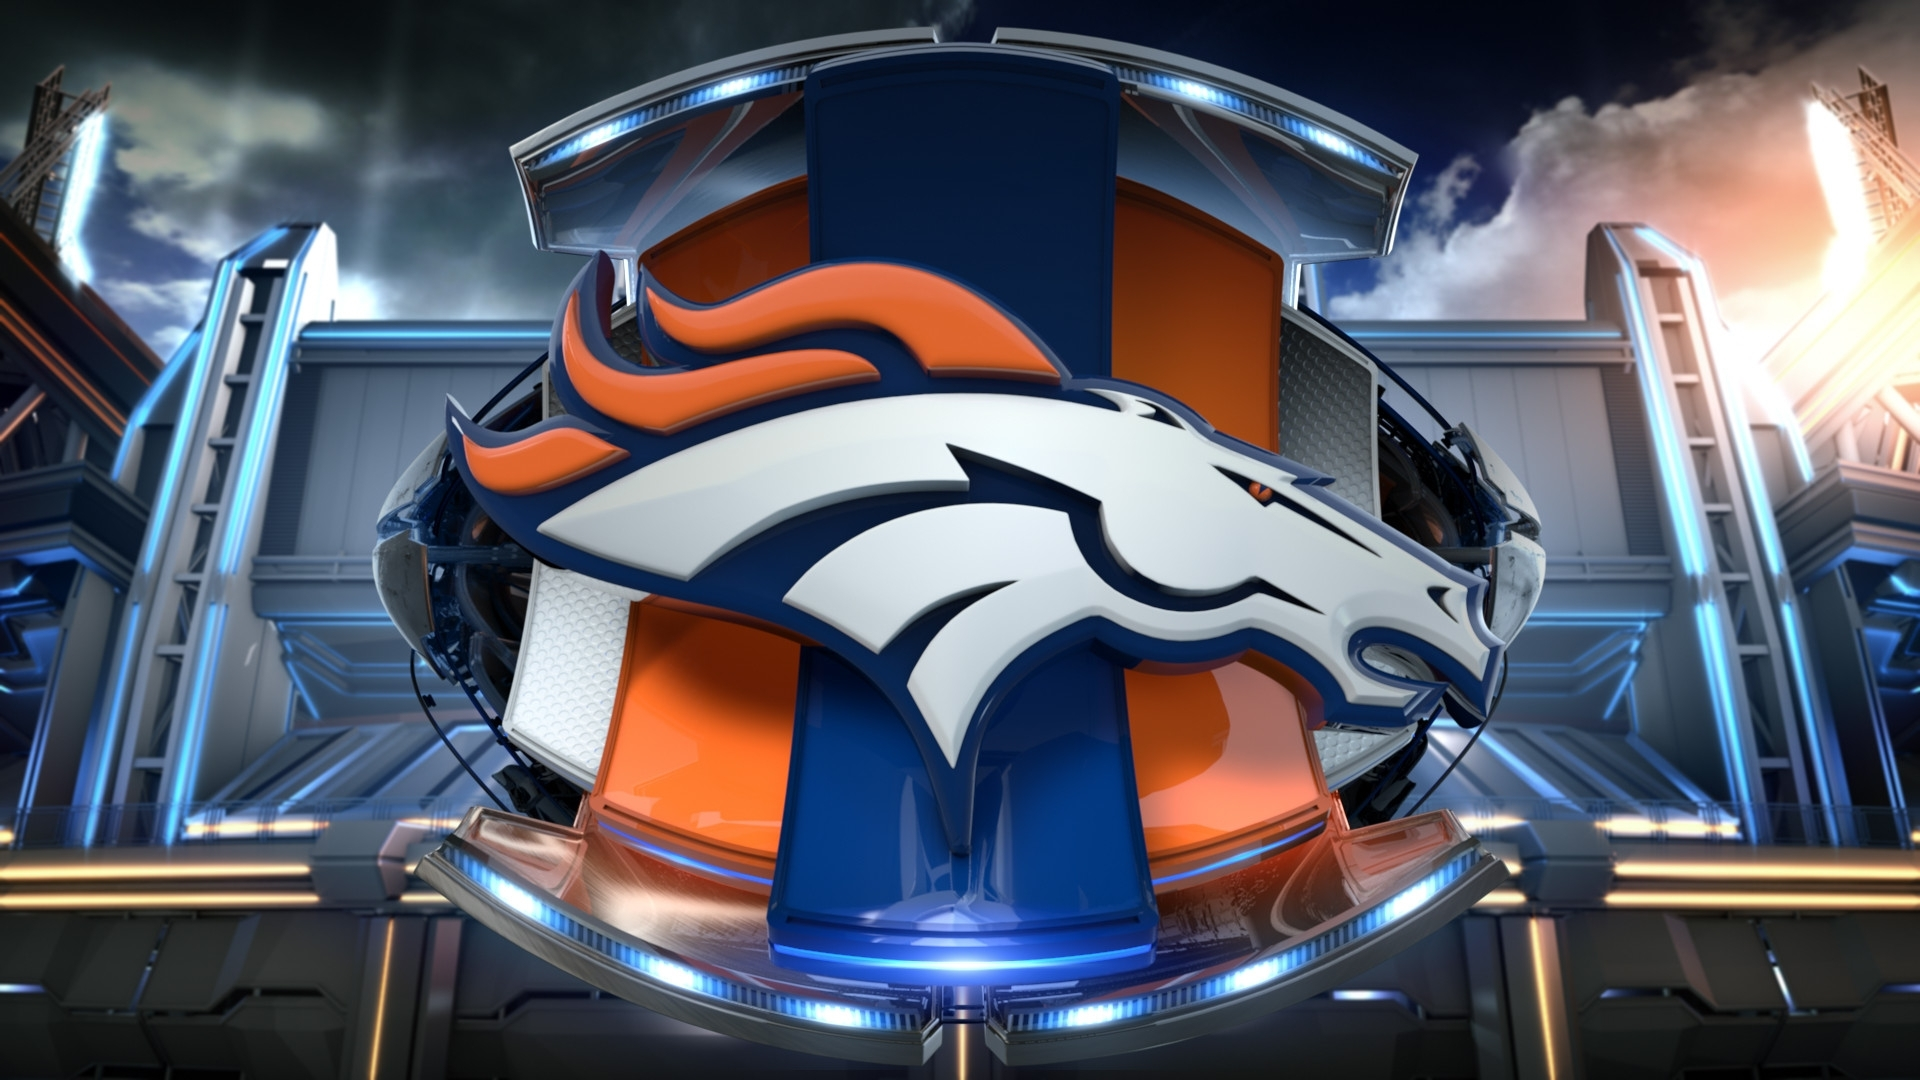 denver broncos 3d logo wallpaper hd. - media file | pixelstalk